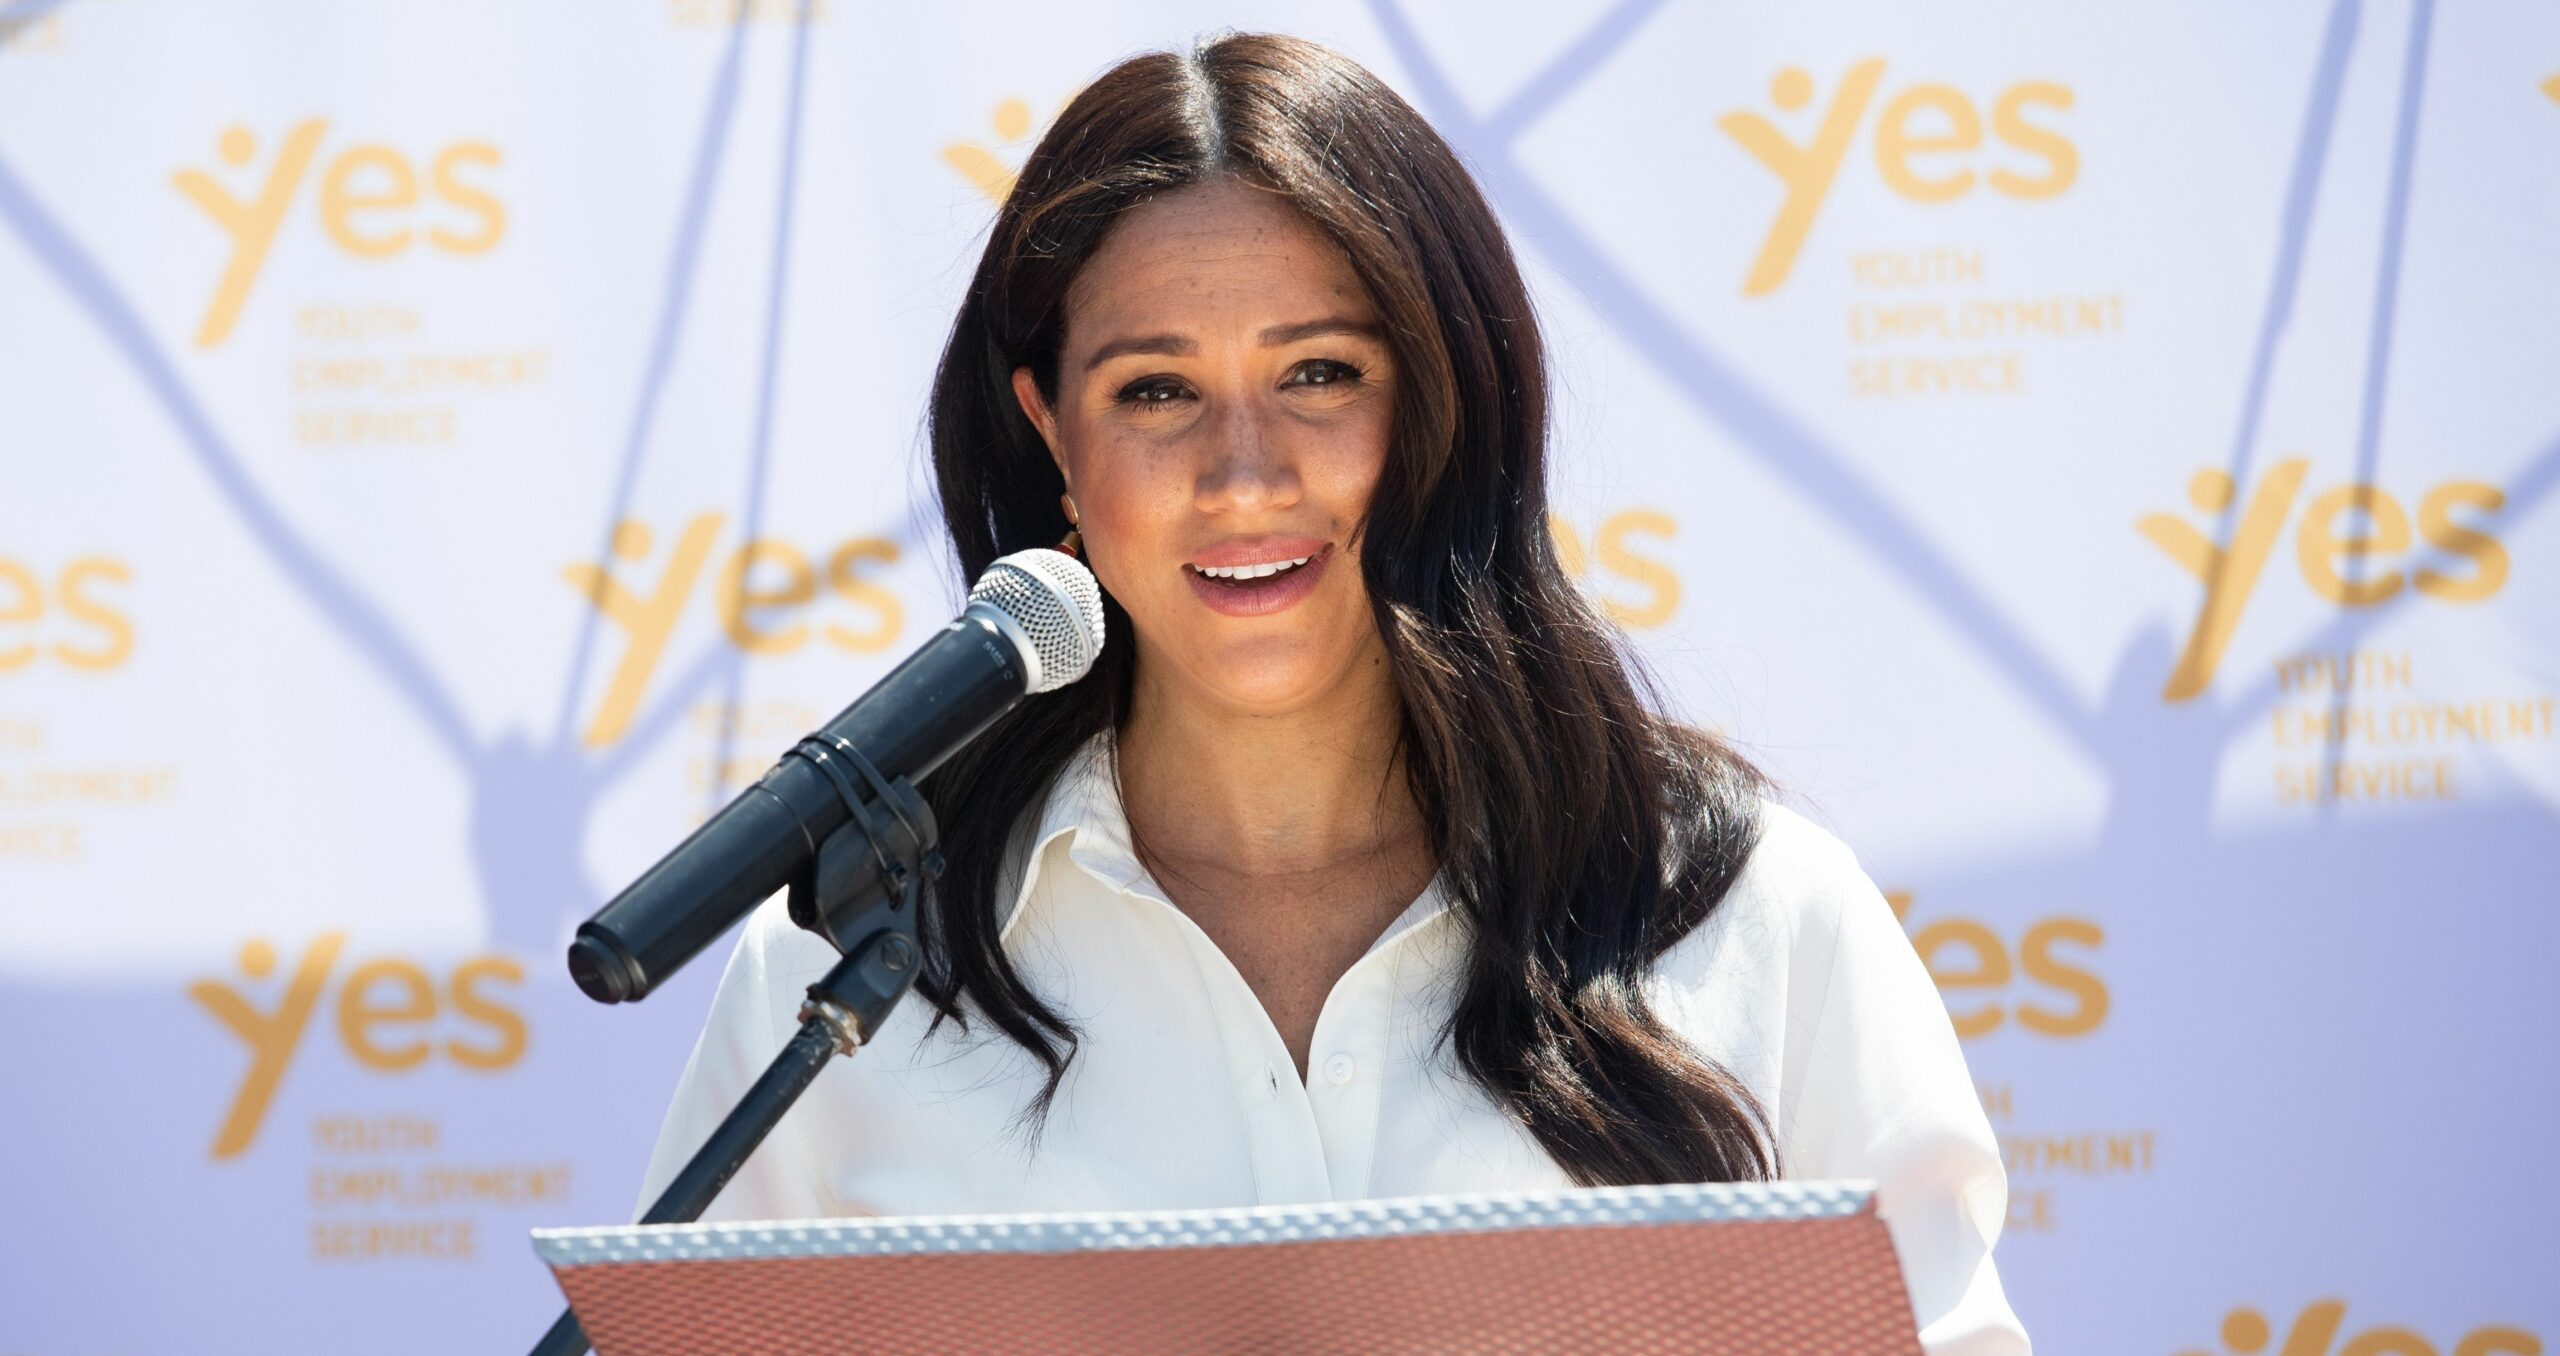 Meghan Markle ofereix un discurs   Europa Press